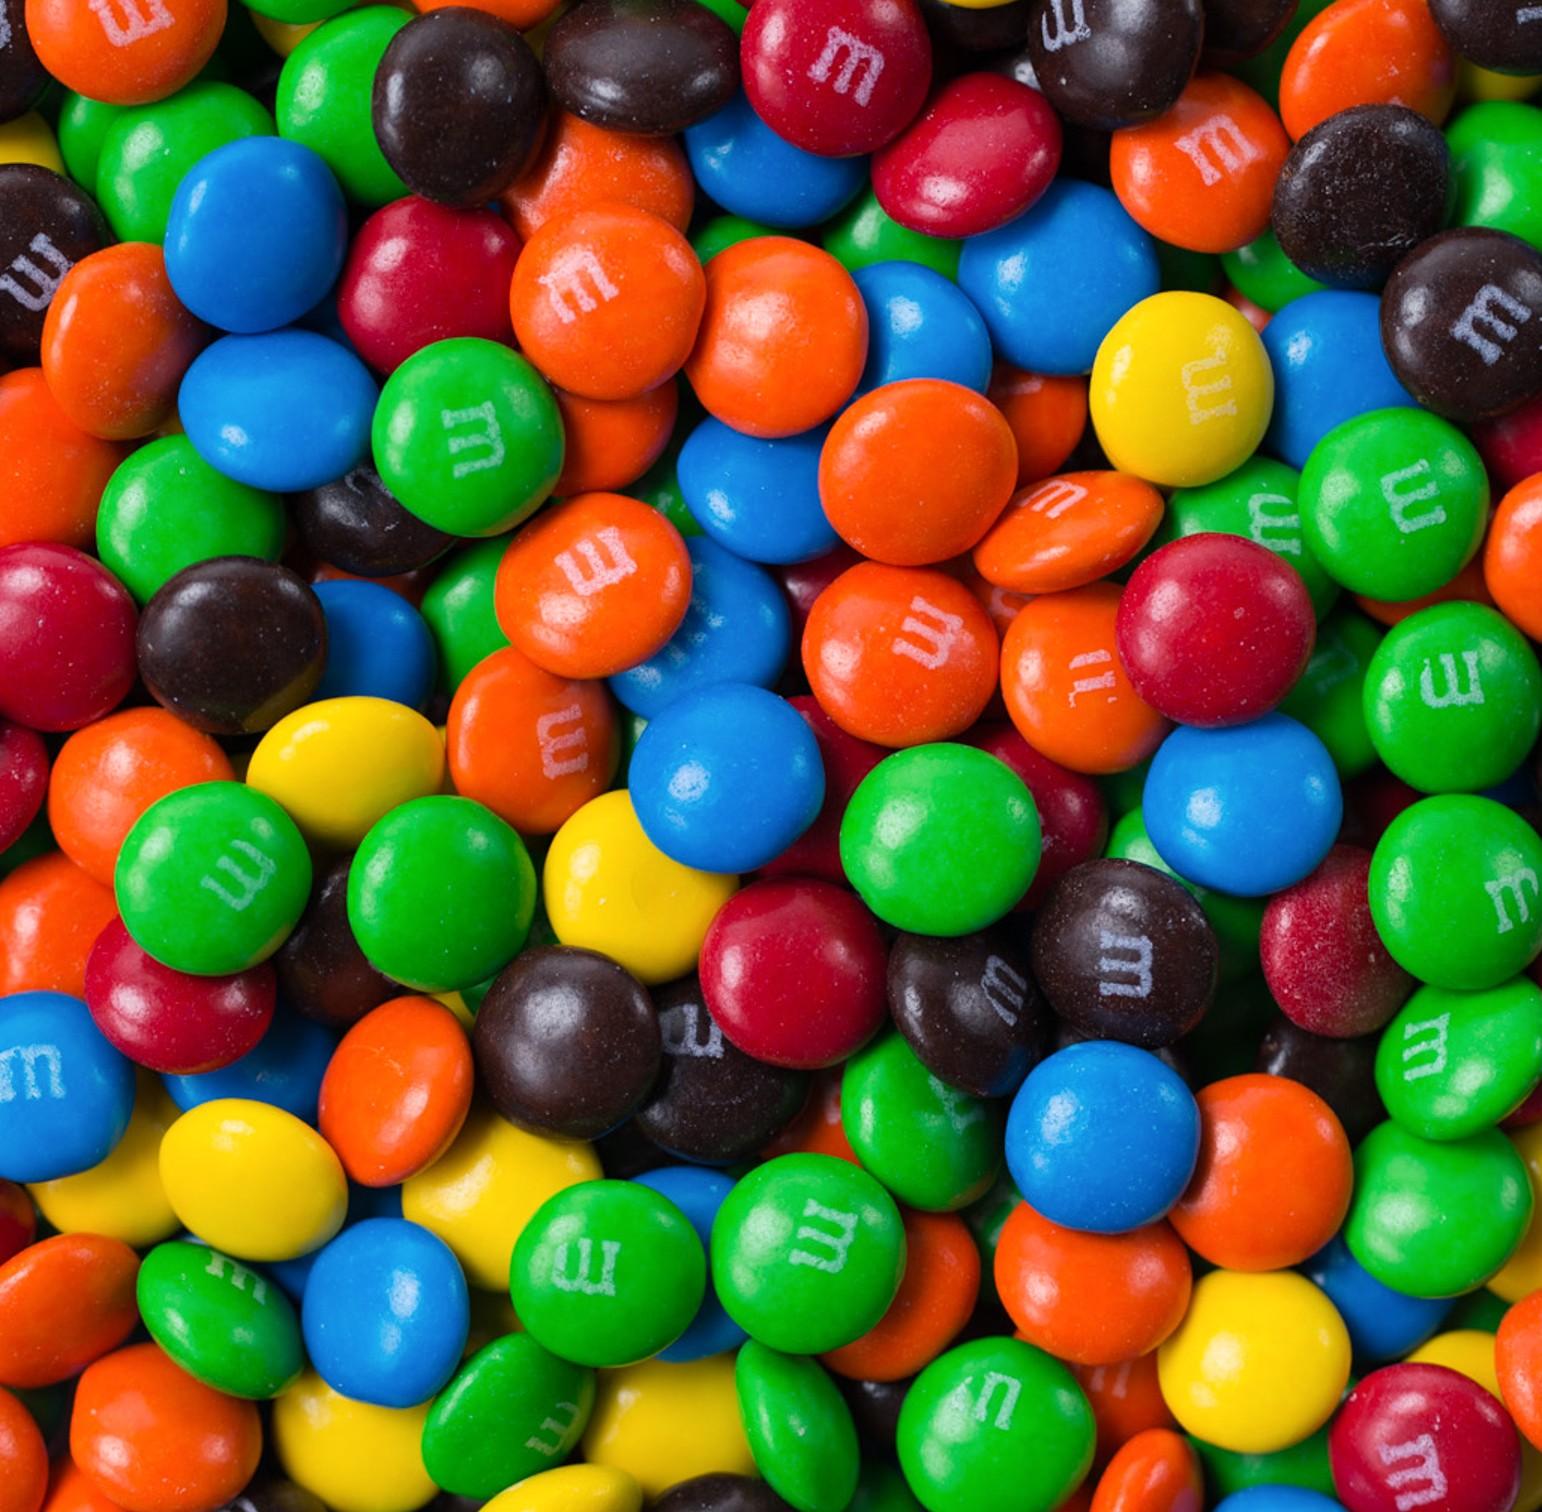 HQ M&m's Wallpapers | File 449.77Kb